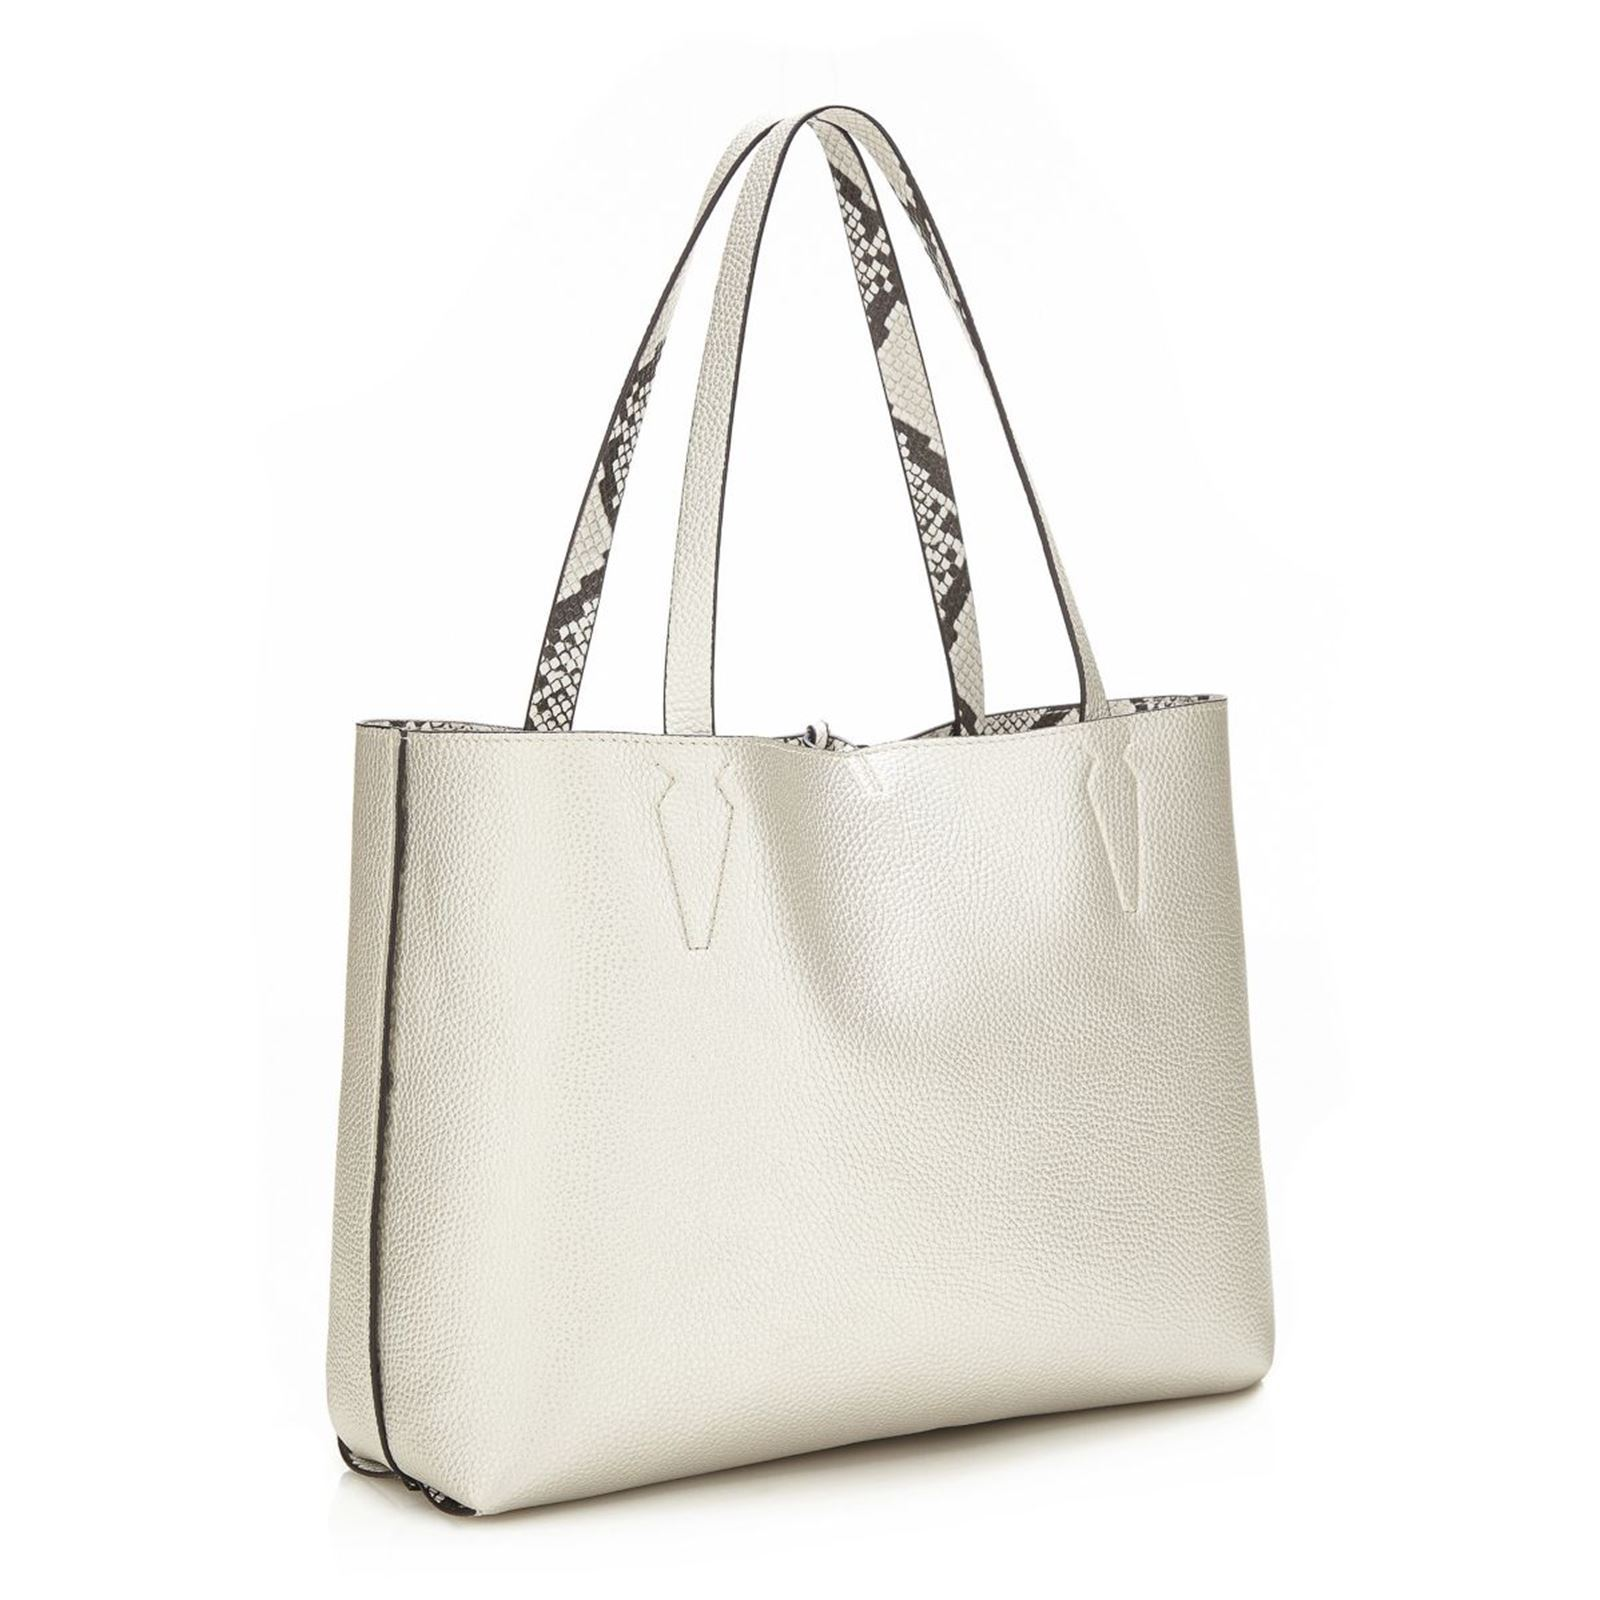 Blanc Reversible Main Bobbi Guess Brandalley Sac À qzIXWn8w-friction ... ce8562d3bbae